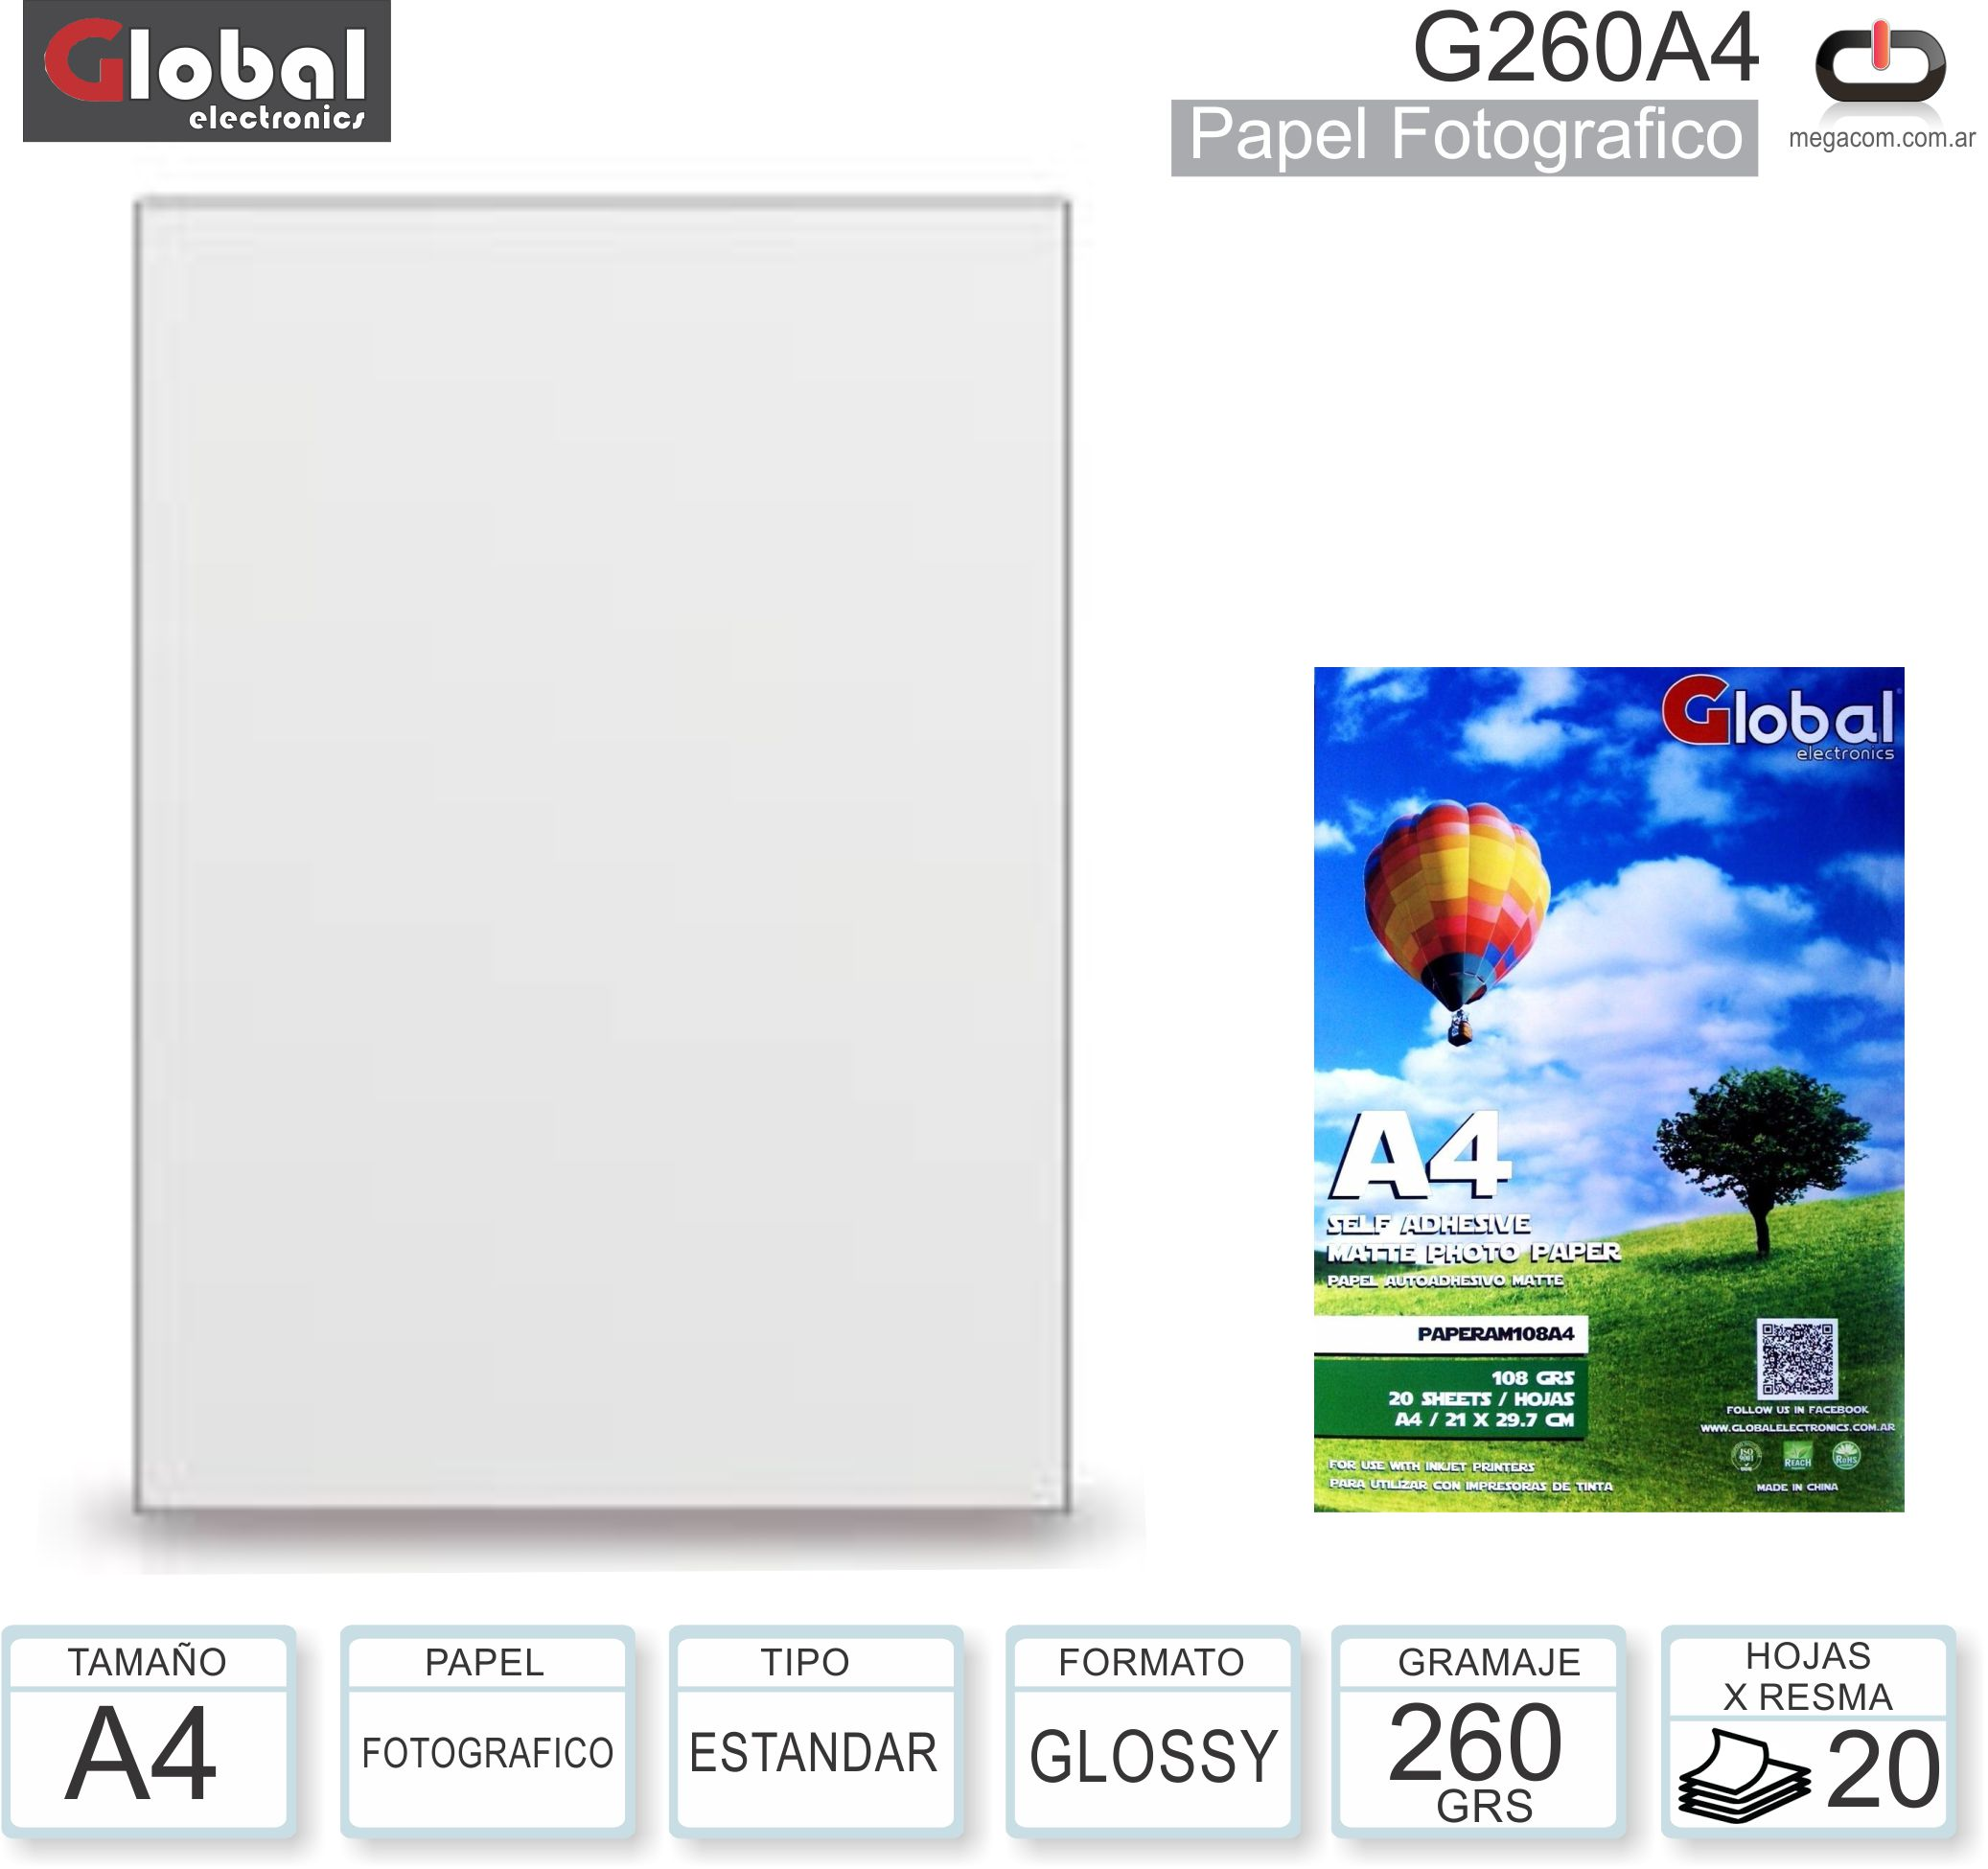 Papel A4 Glossy 260G/020H GLOBAL G260A4